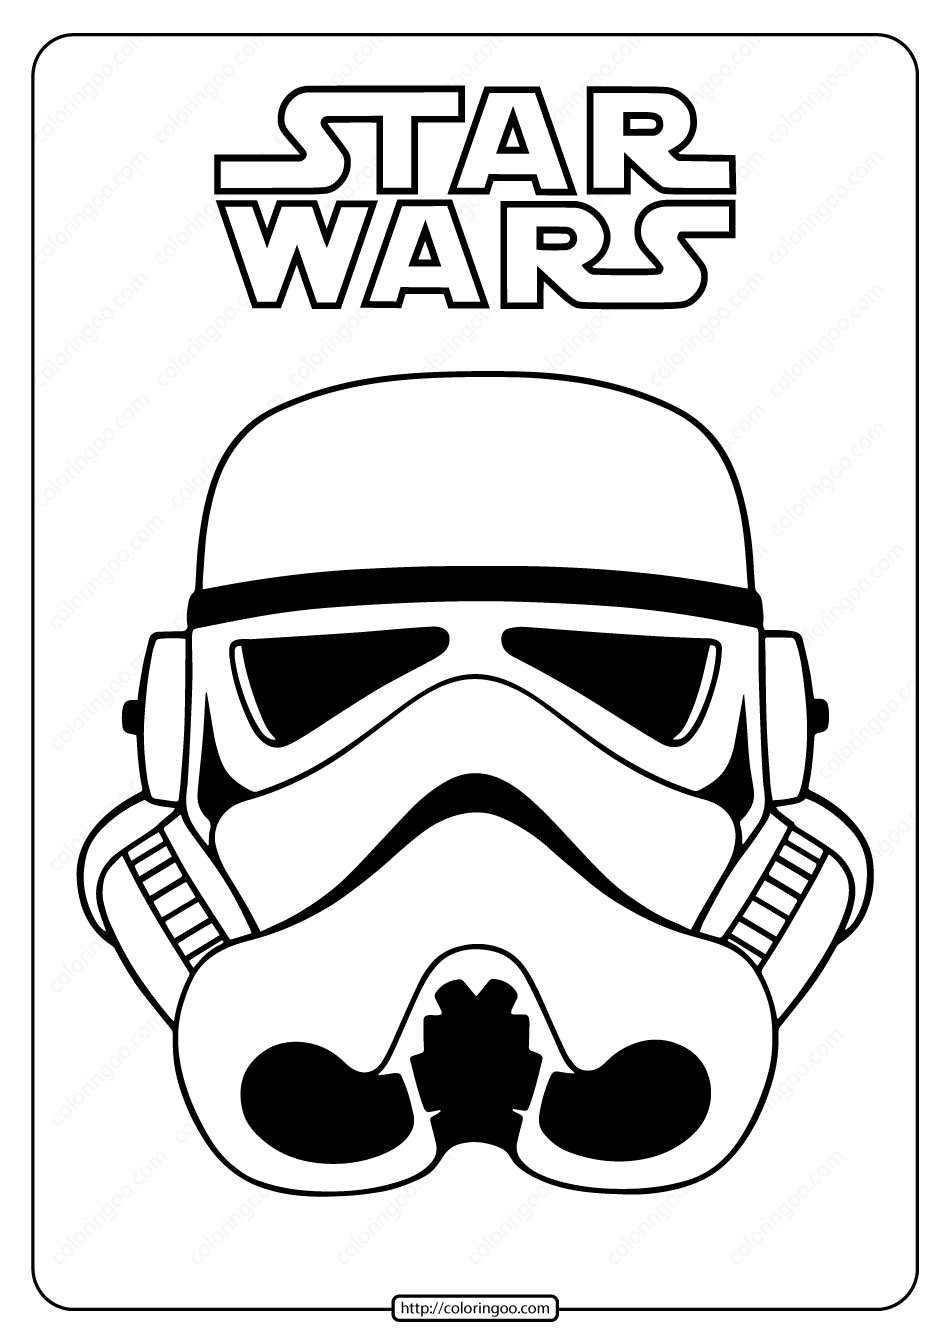 Star Wars Clone Trooper Mask Coloring Pages Star Wars Stickers Star Wars Mask Printable Star Wars Coloring Sheet